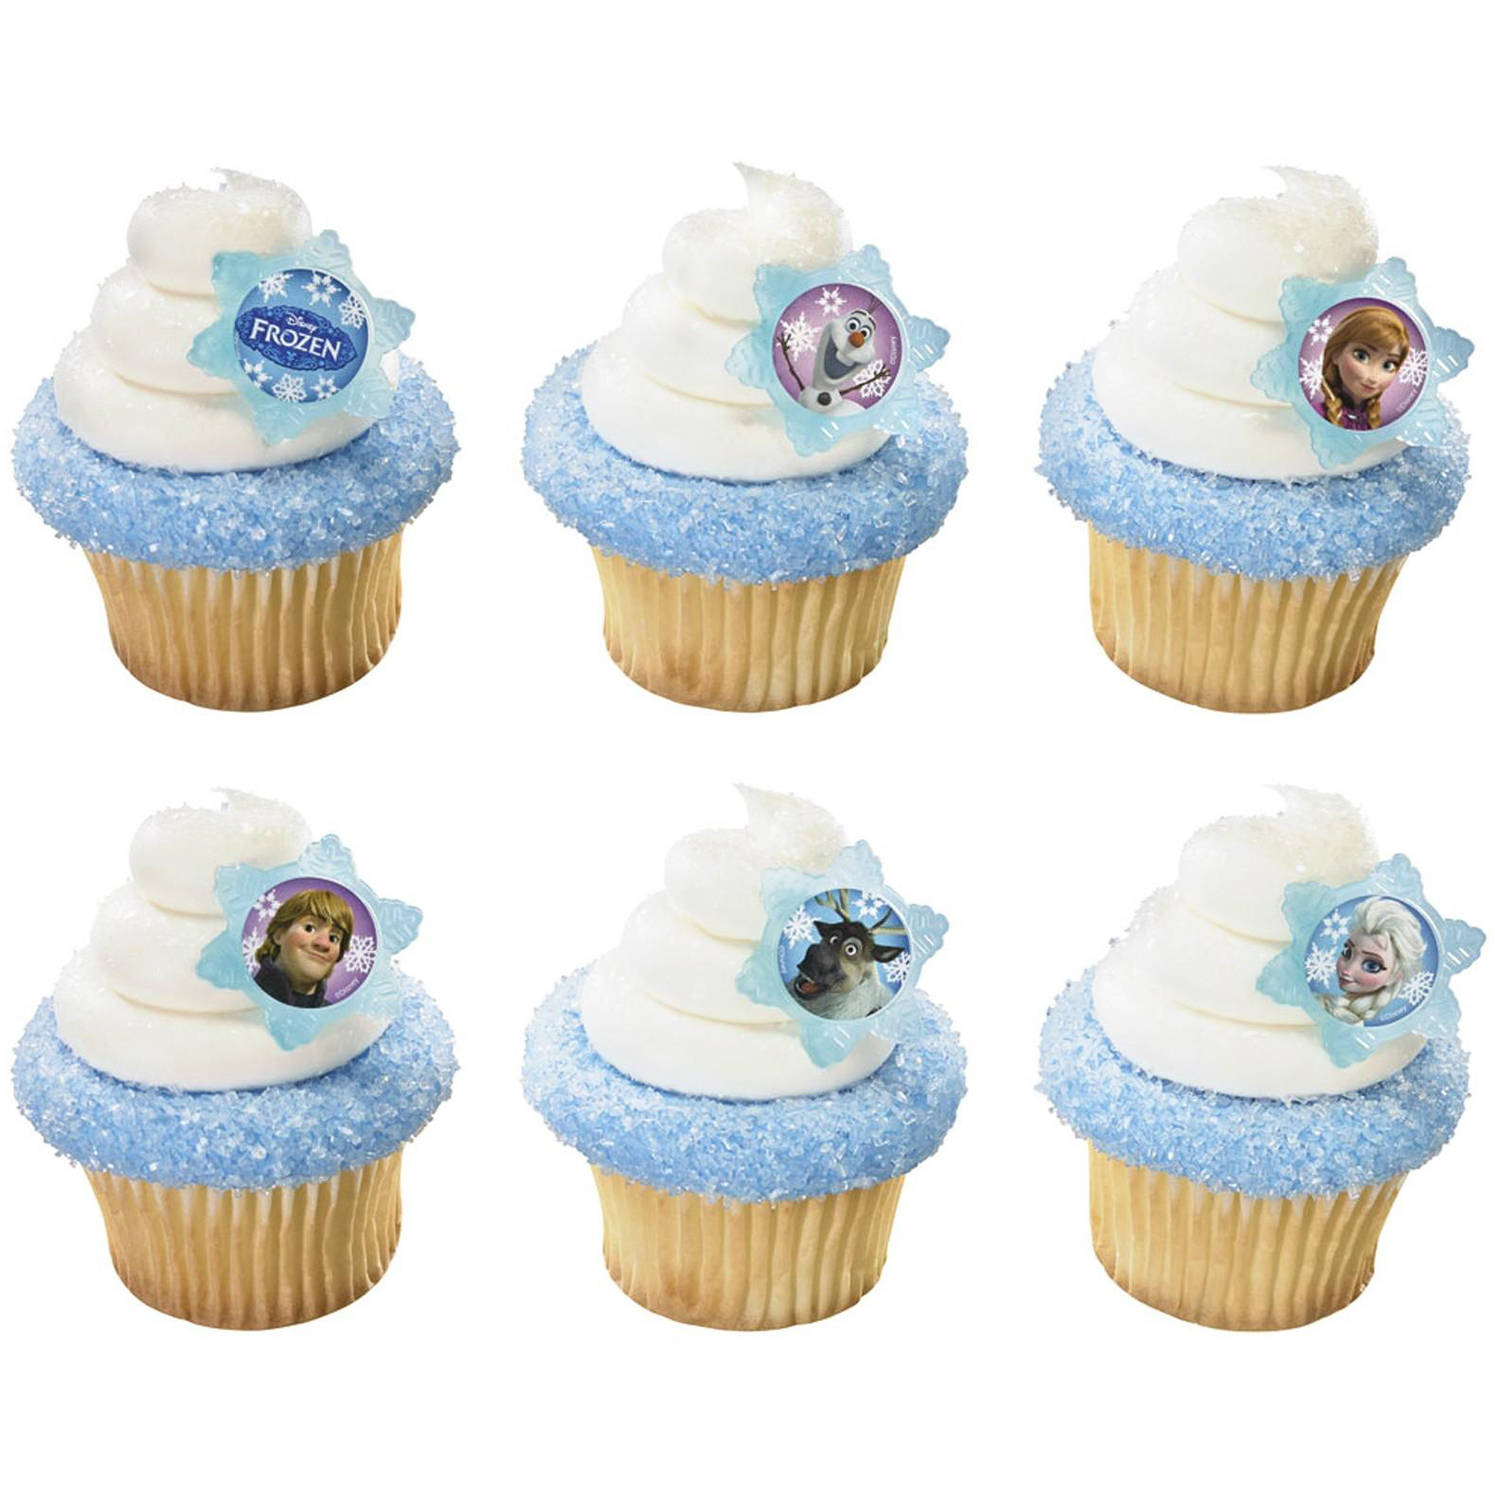 SPECIAL ORDER CUPCAKES - RINGS-FROZEN-ADVENTURE FRIENDS